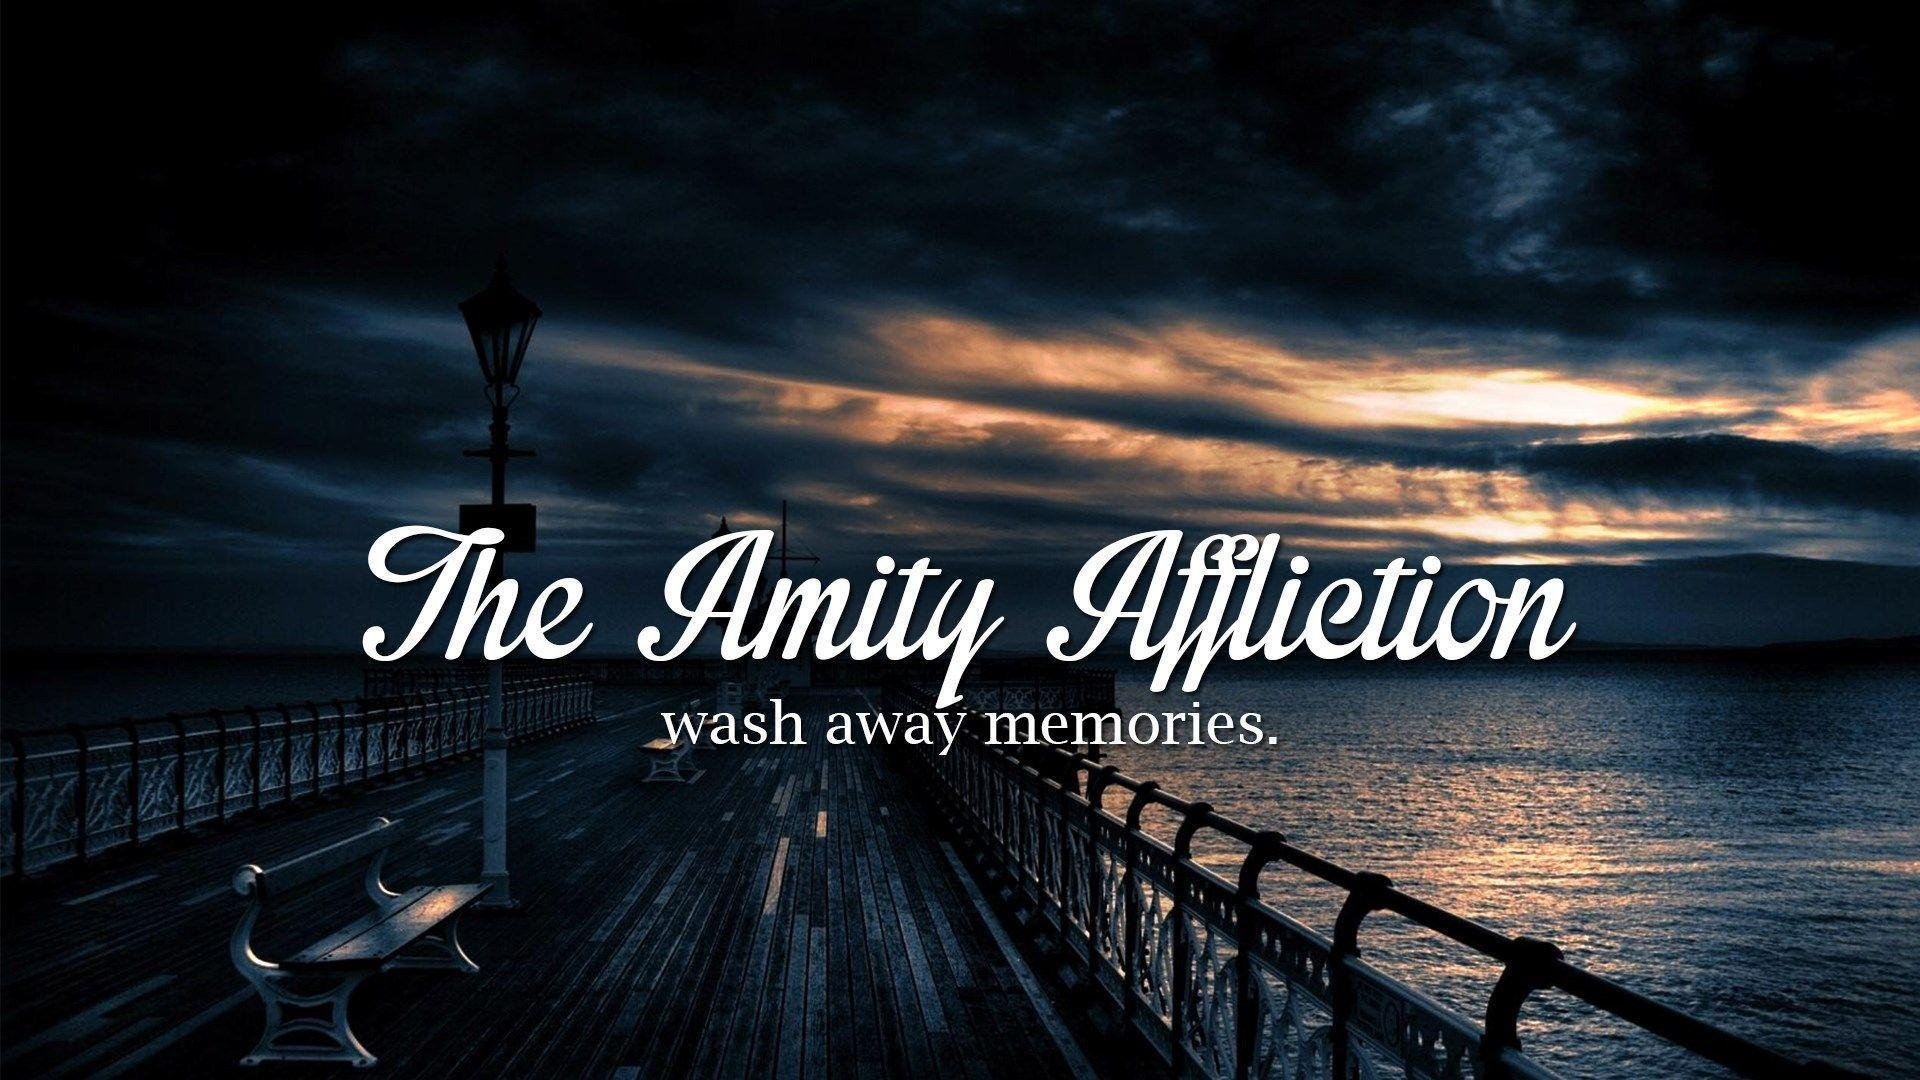 The Amity Affliction Iphone Wallpaper Wallppapers Gallery